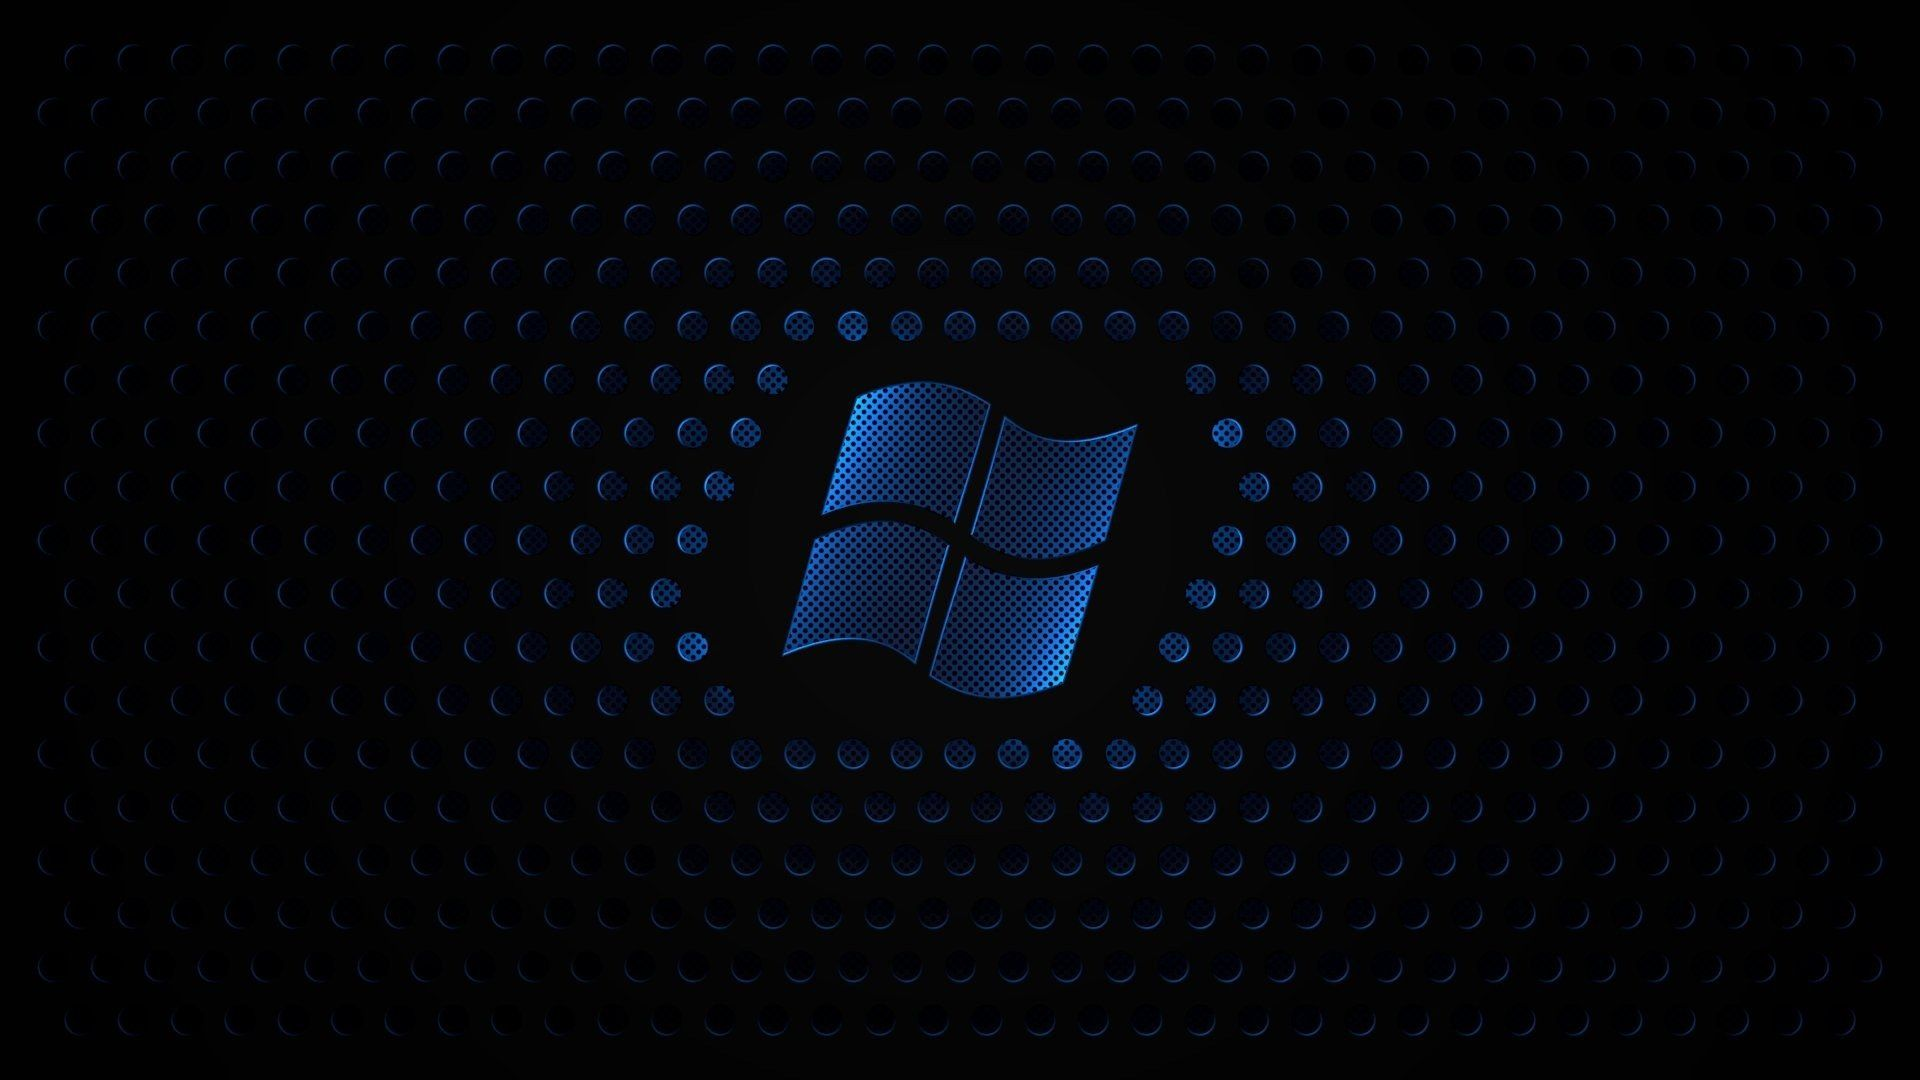 Windows Professional Wallpapers Hd Wallpaperpulse 1280 800 Windows 7 Professional Wallpapers H Windows Wallpaper Black And Blue Background Black Hd Wallpaper